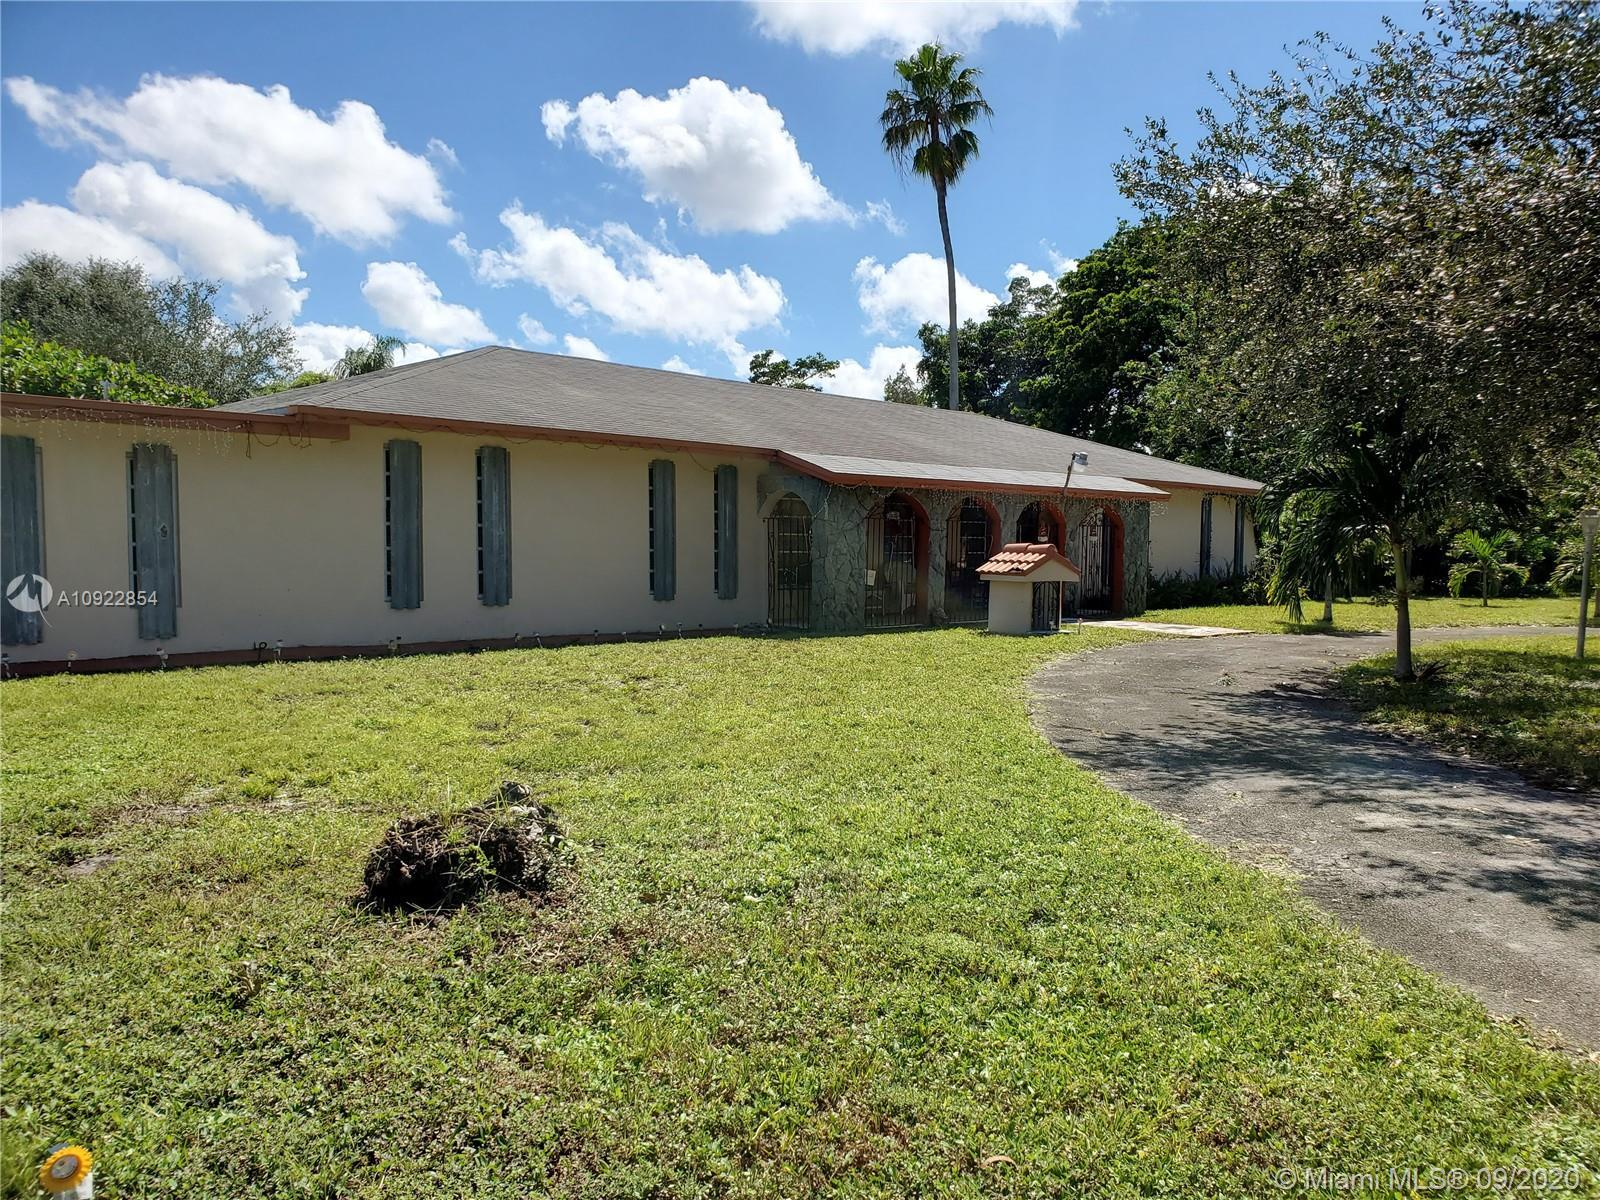 AMAZING OPPORTUNITY TO LIVE IN A HUGE HOUSE IN AN OVER SIZED LOT IN PRESTIGIOUS PEMBROKE PARK. THE C